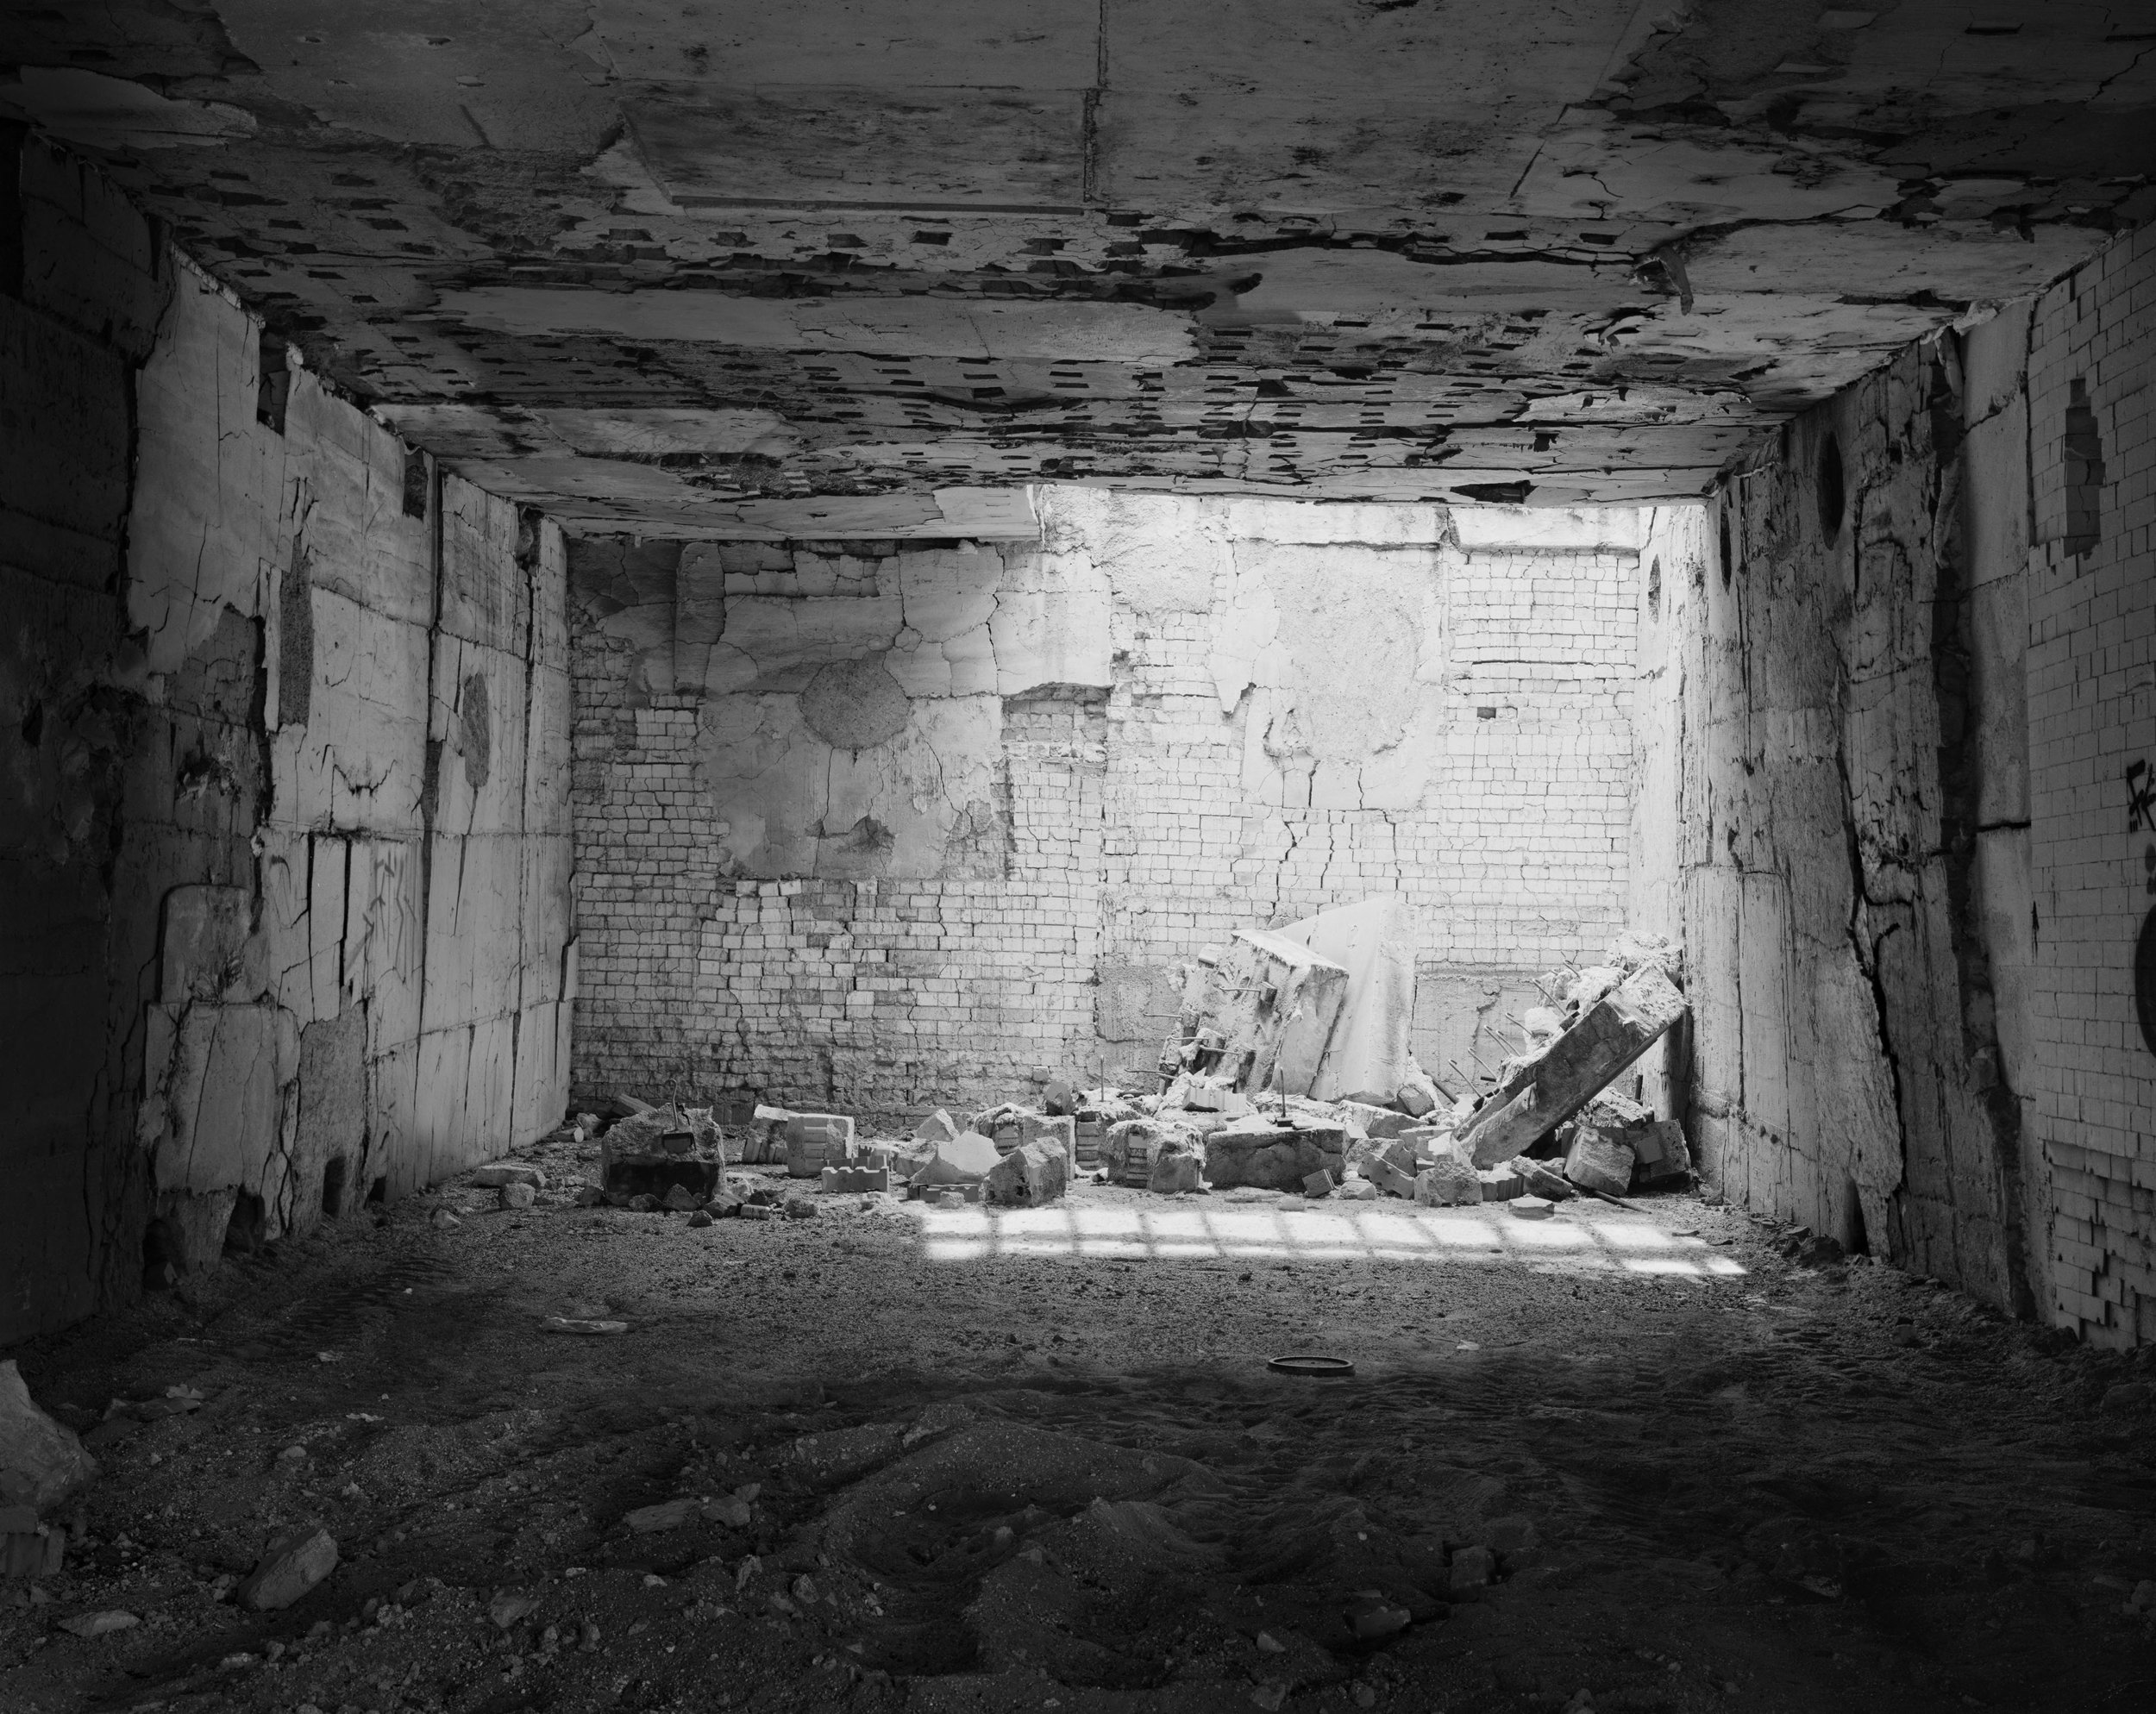 Rowan Conroy  Kiln #1 f rom the Series  The Poetics of Detritus 2008- 2019  (ongoing) .  Piezography print on cotton rag. Finalist in the 2018  Bowness Photography Prize .